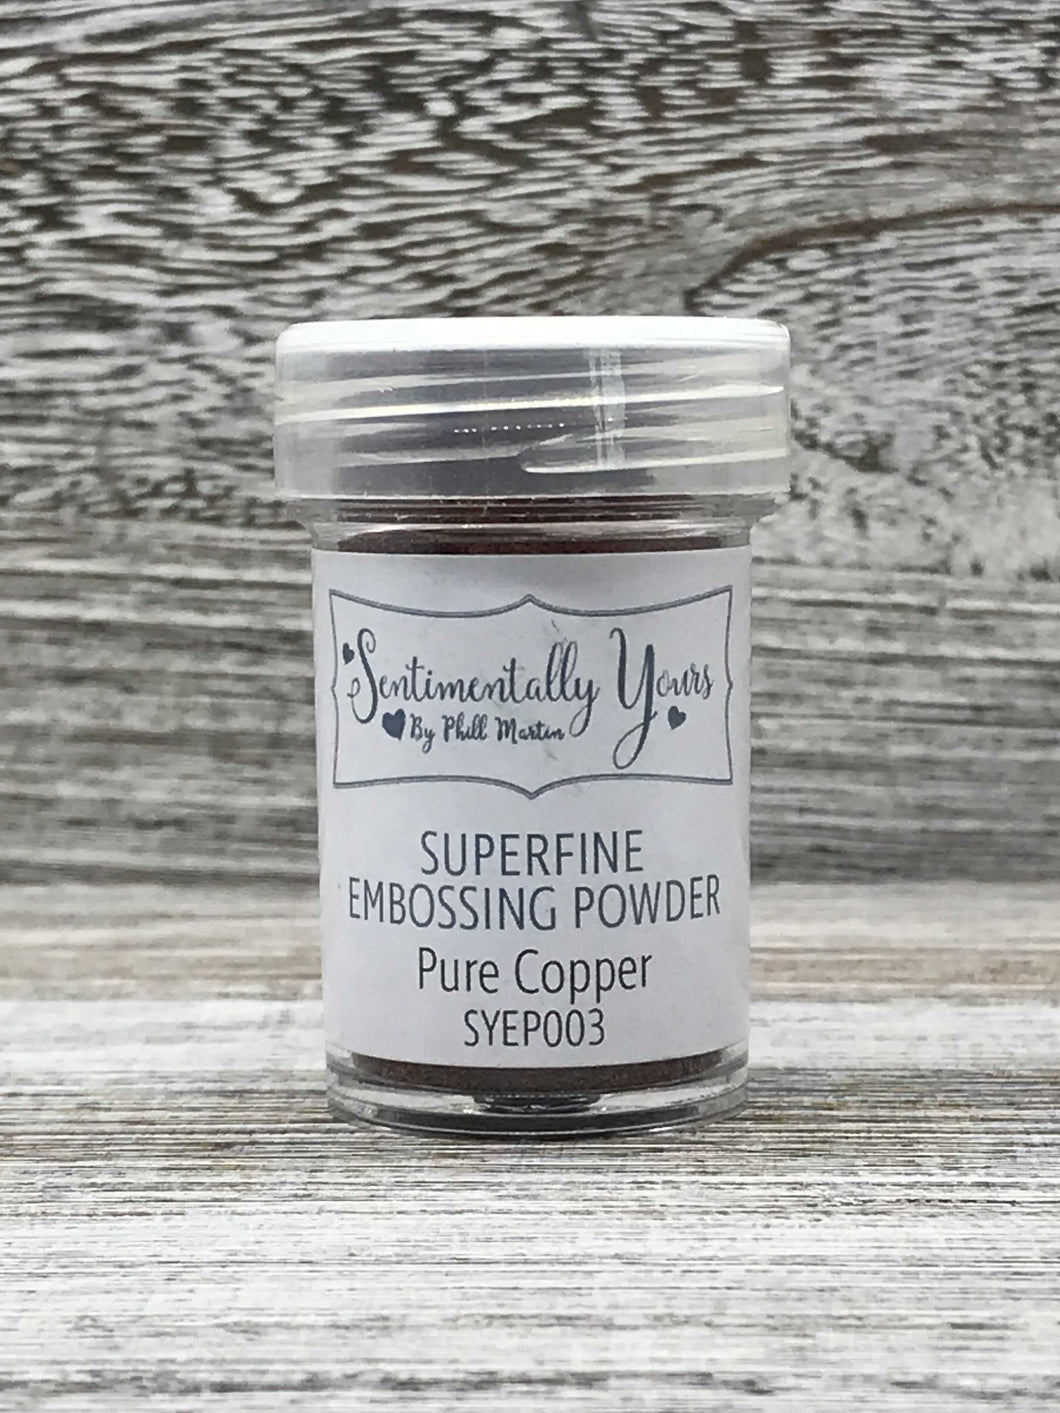 Sentimentally Yours Superfine Embossing Powder - Pure Copper